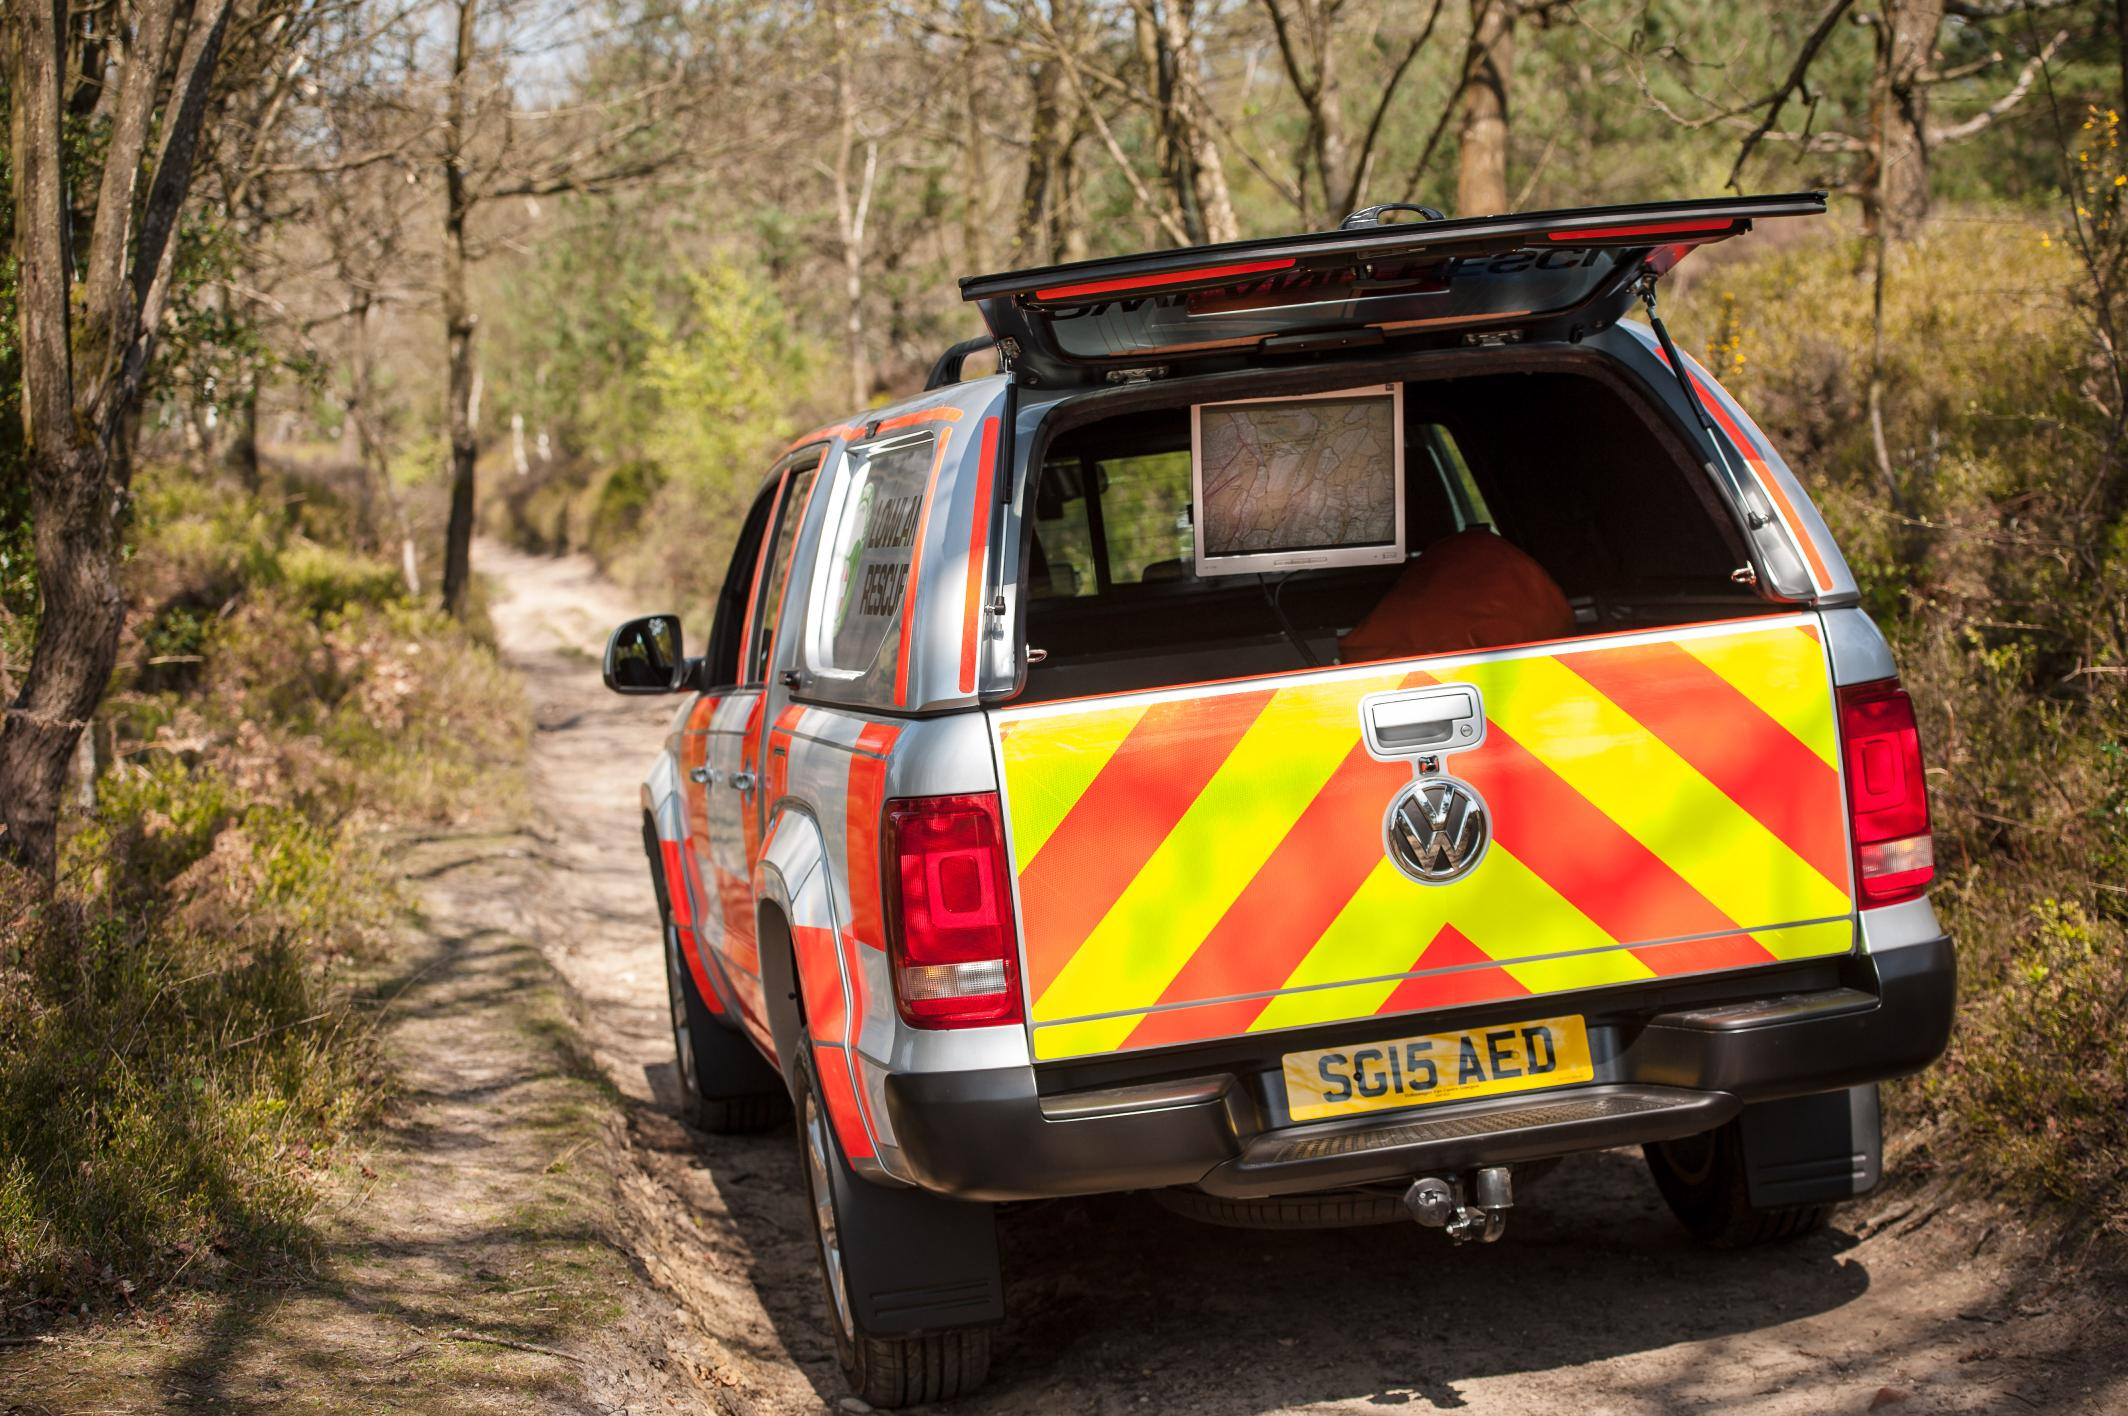 the vw amarok search and rescue vehicle